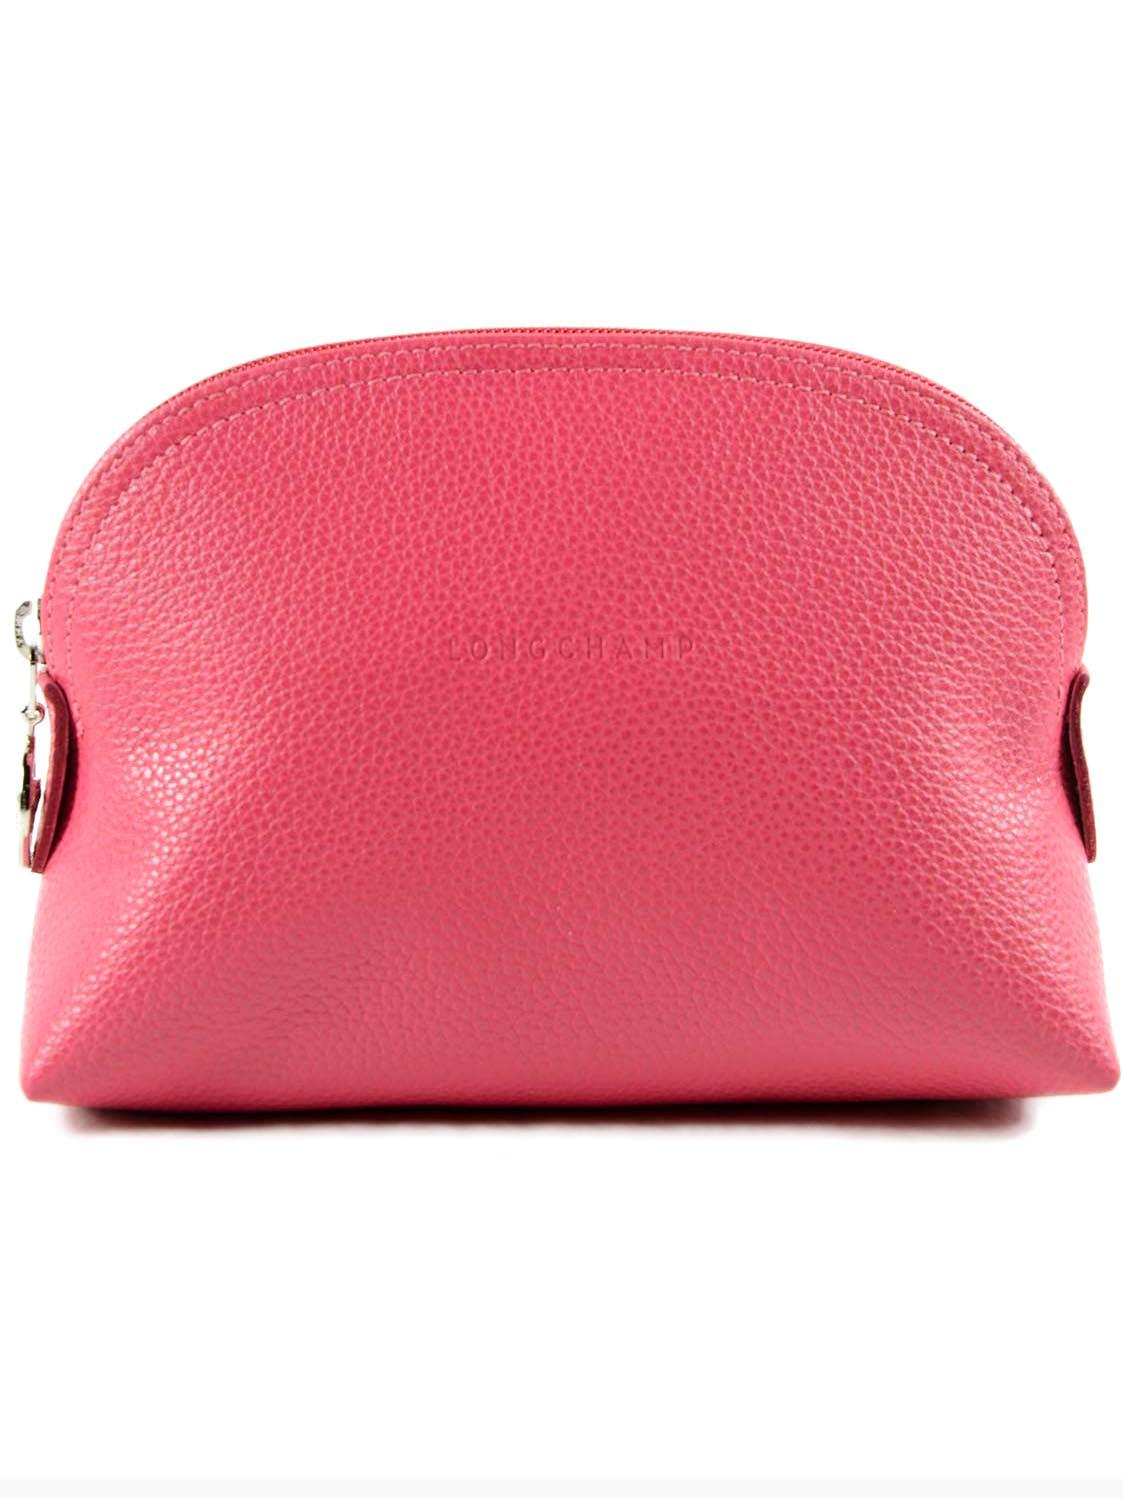 Le Foulonne Pouch In Pink